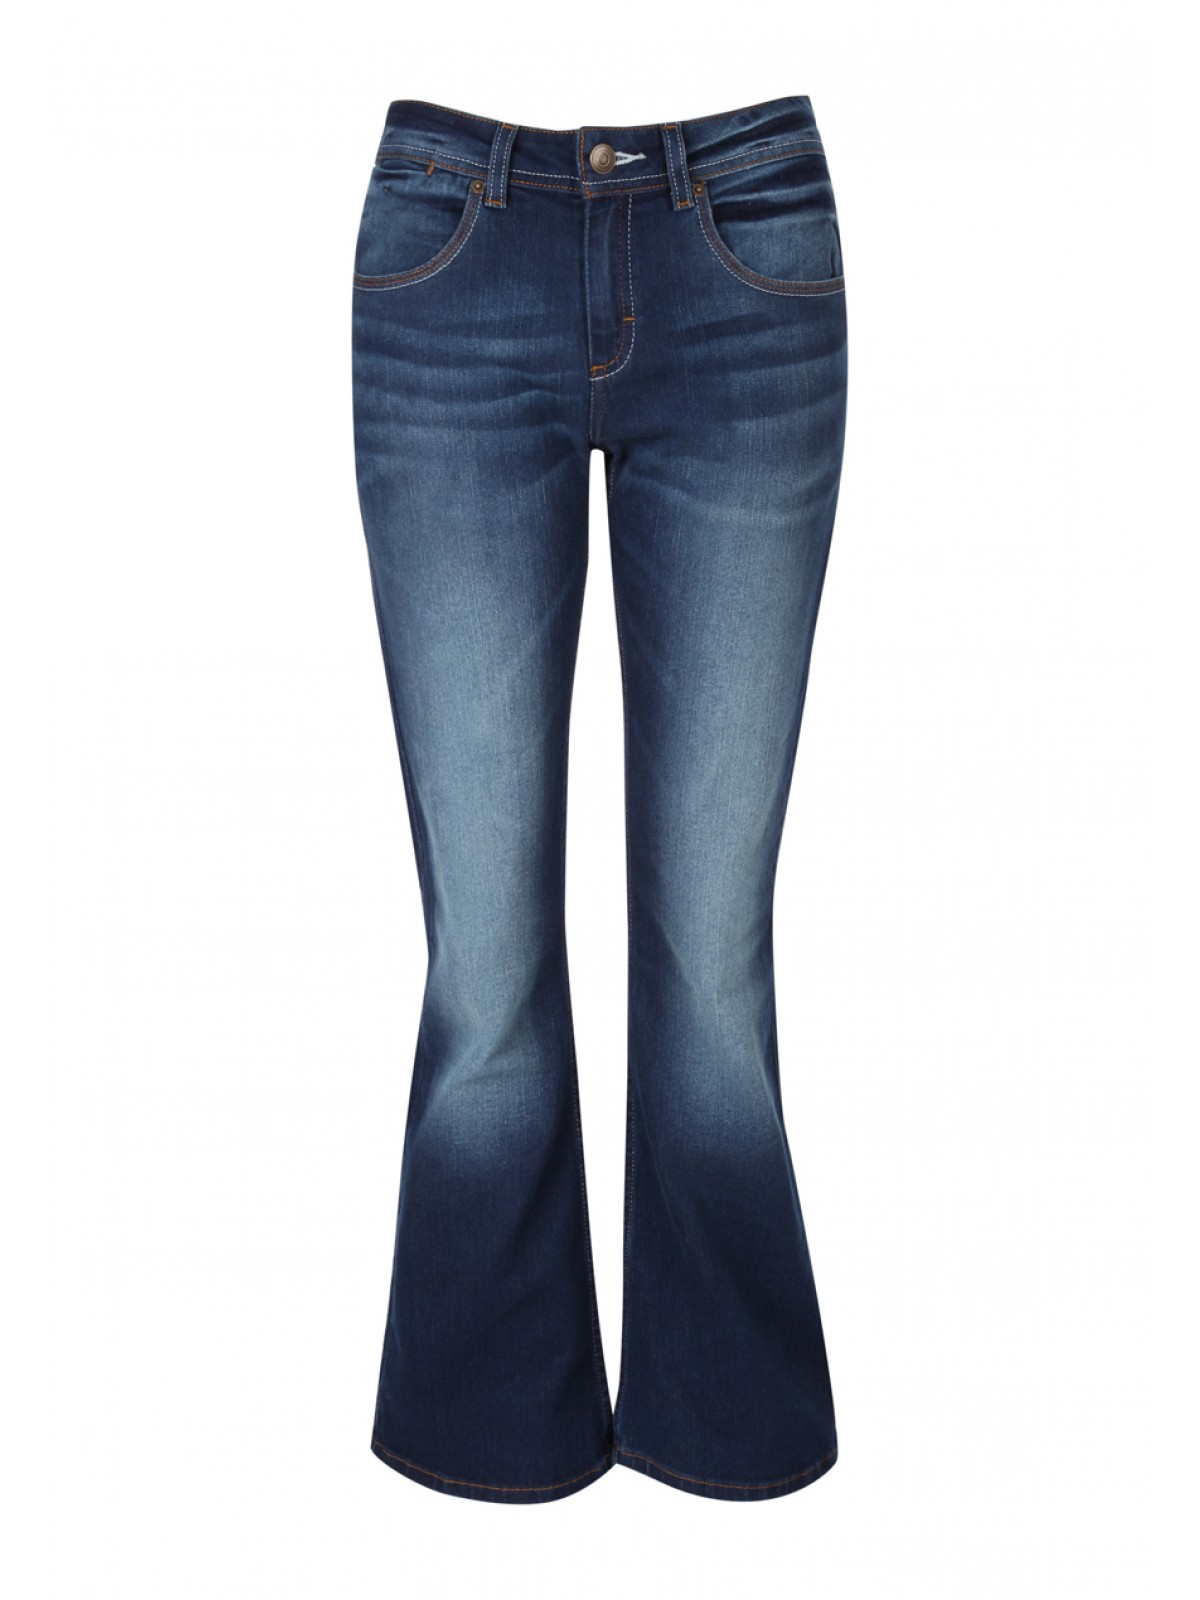 Women Jeans Boot cut Creative India Exports